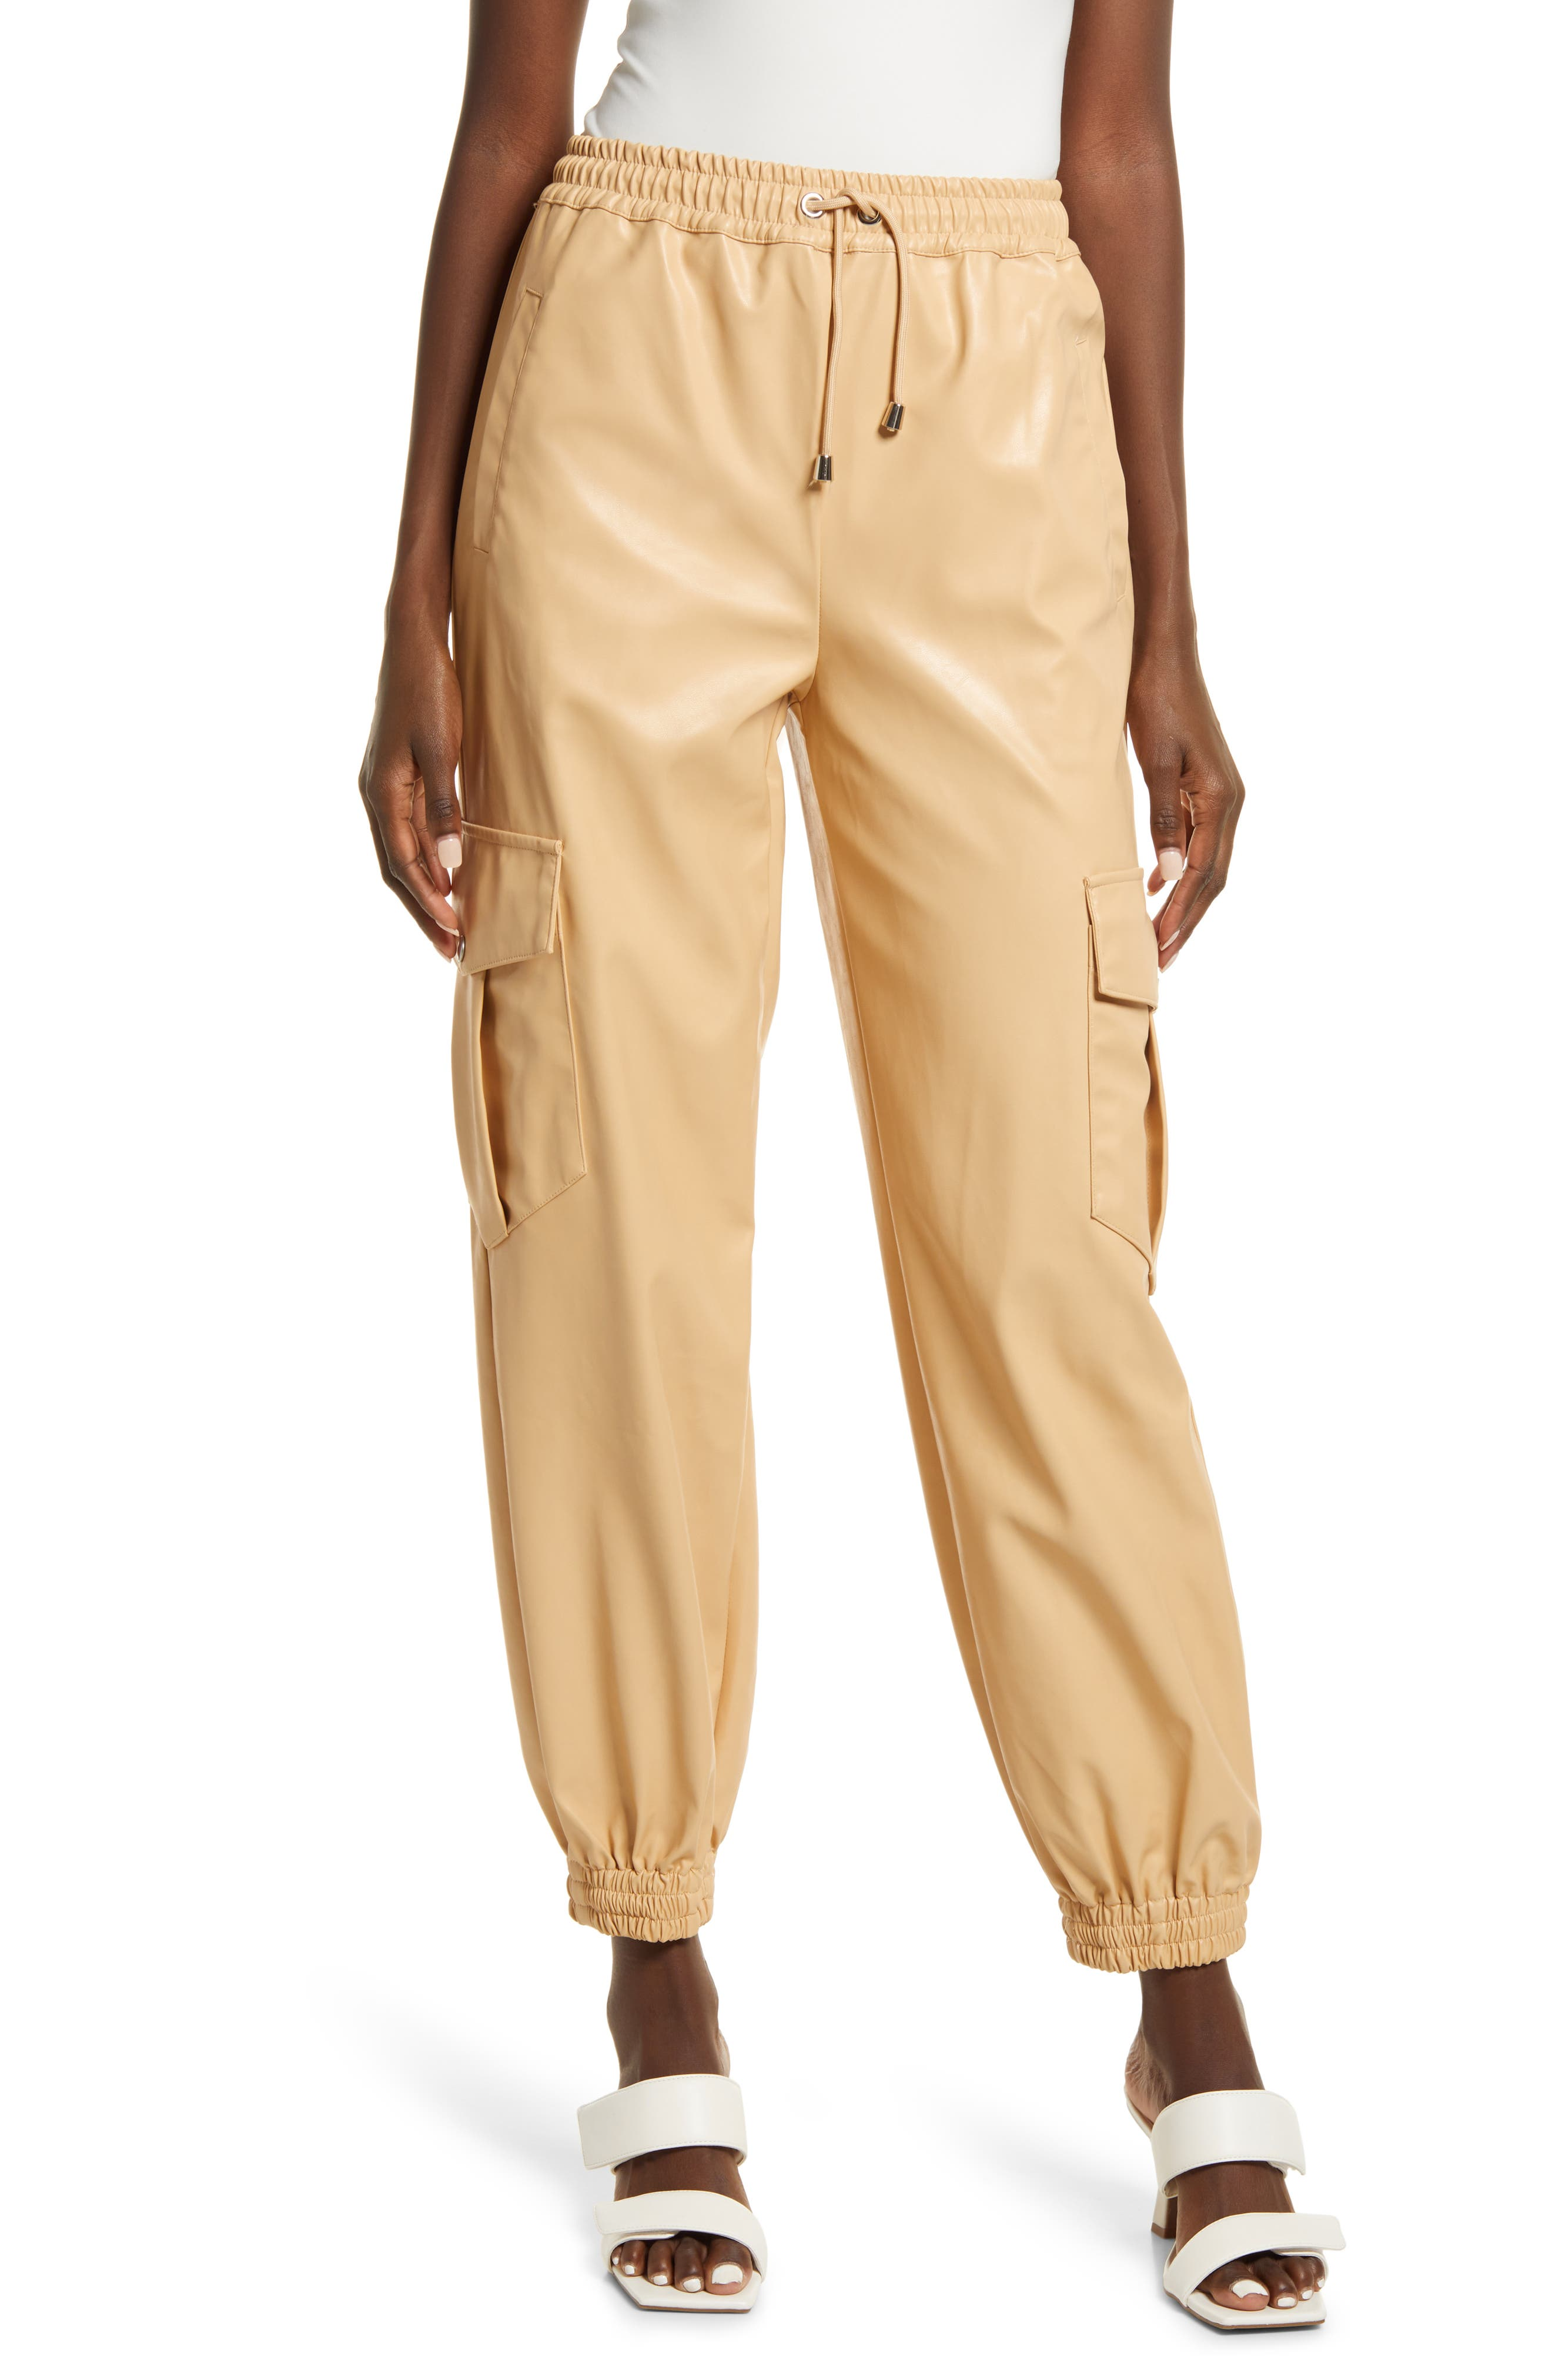 Women's Kendall + Kylie Cargo Faux Leather Joggers